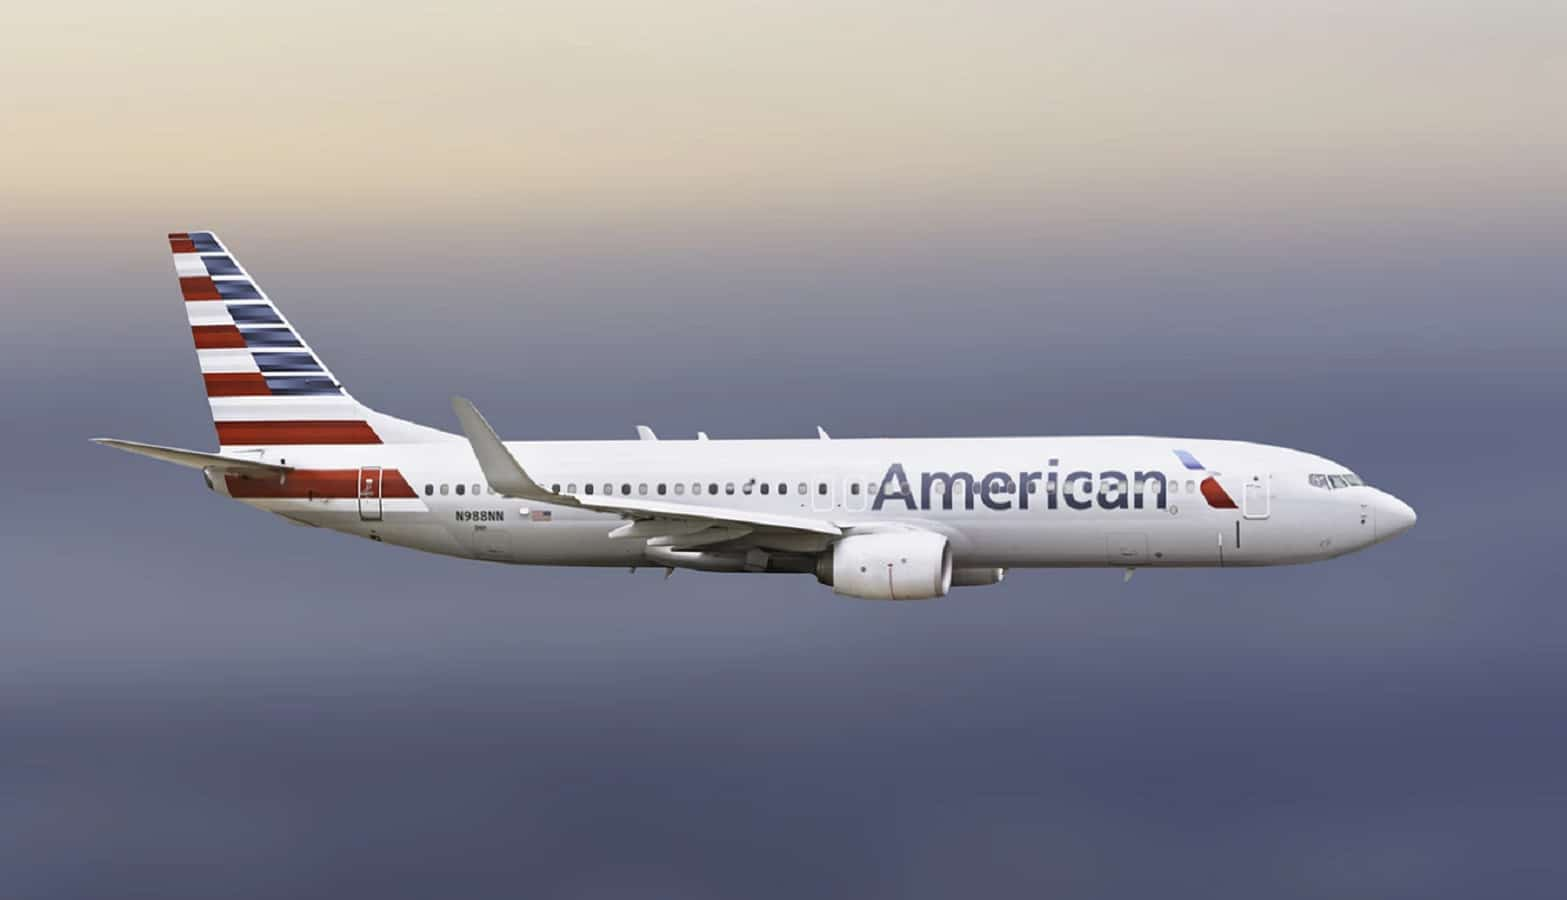 american airlines plane in air